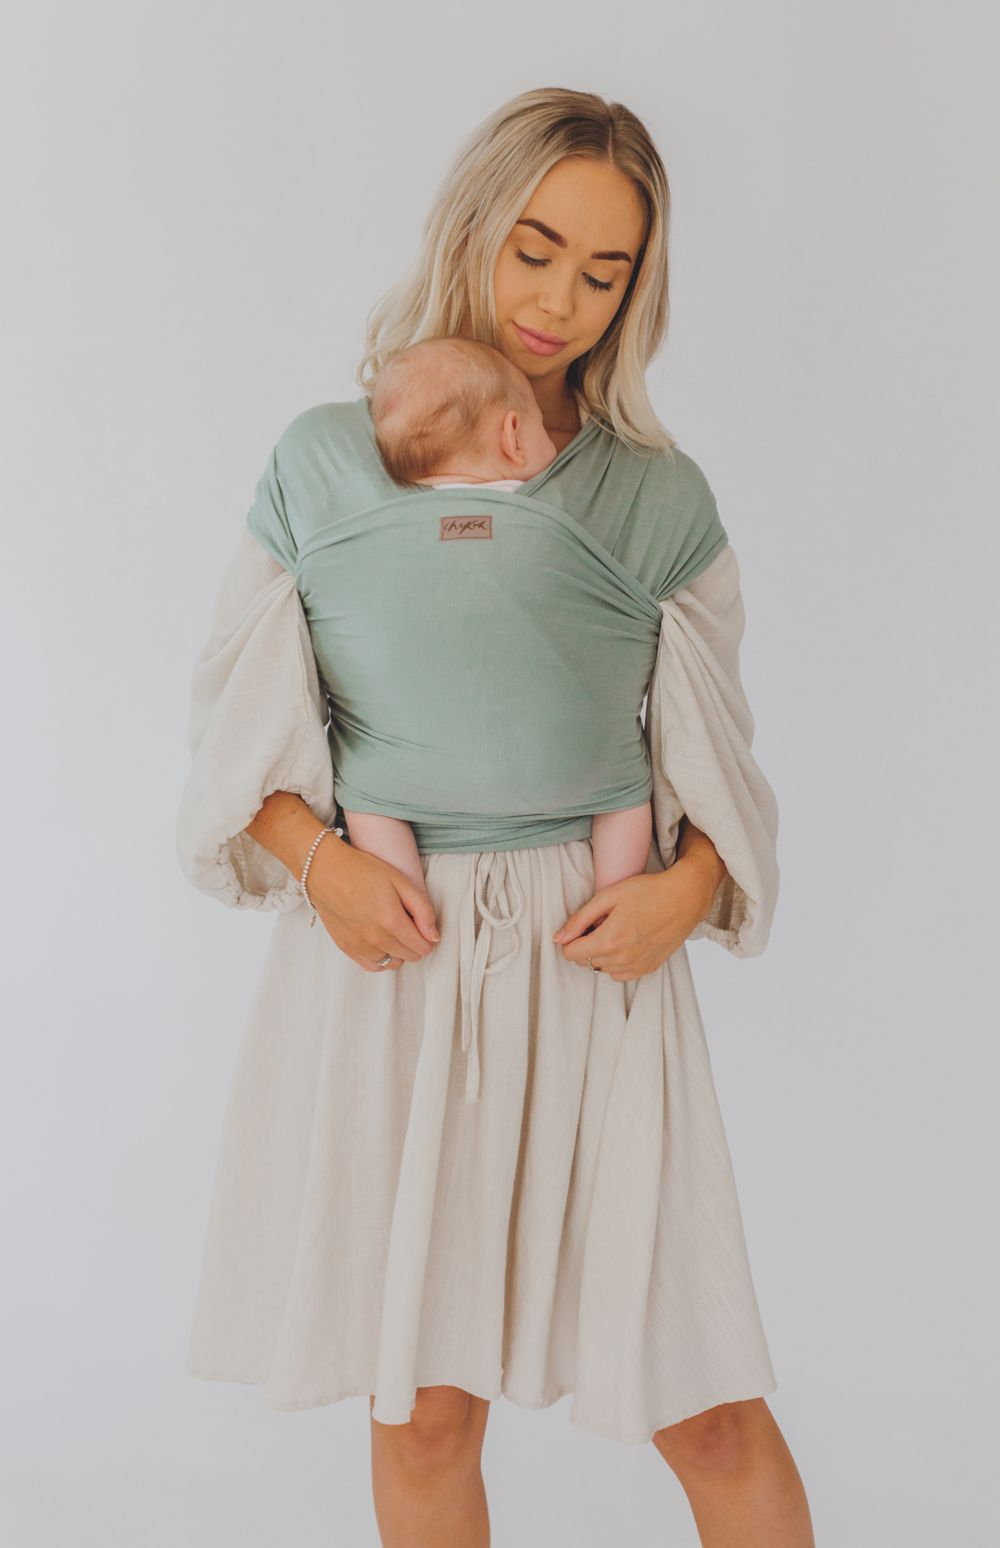 australia's best chekoh teal baby wrap carrier for newborn infant